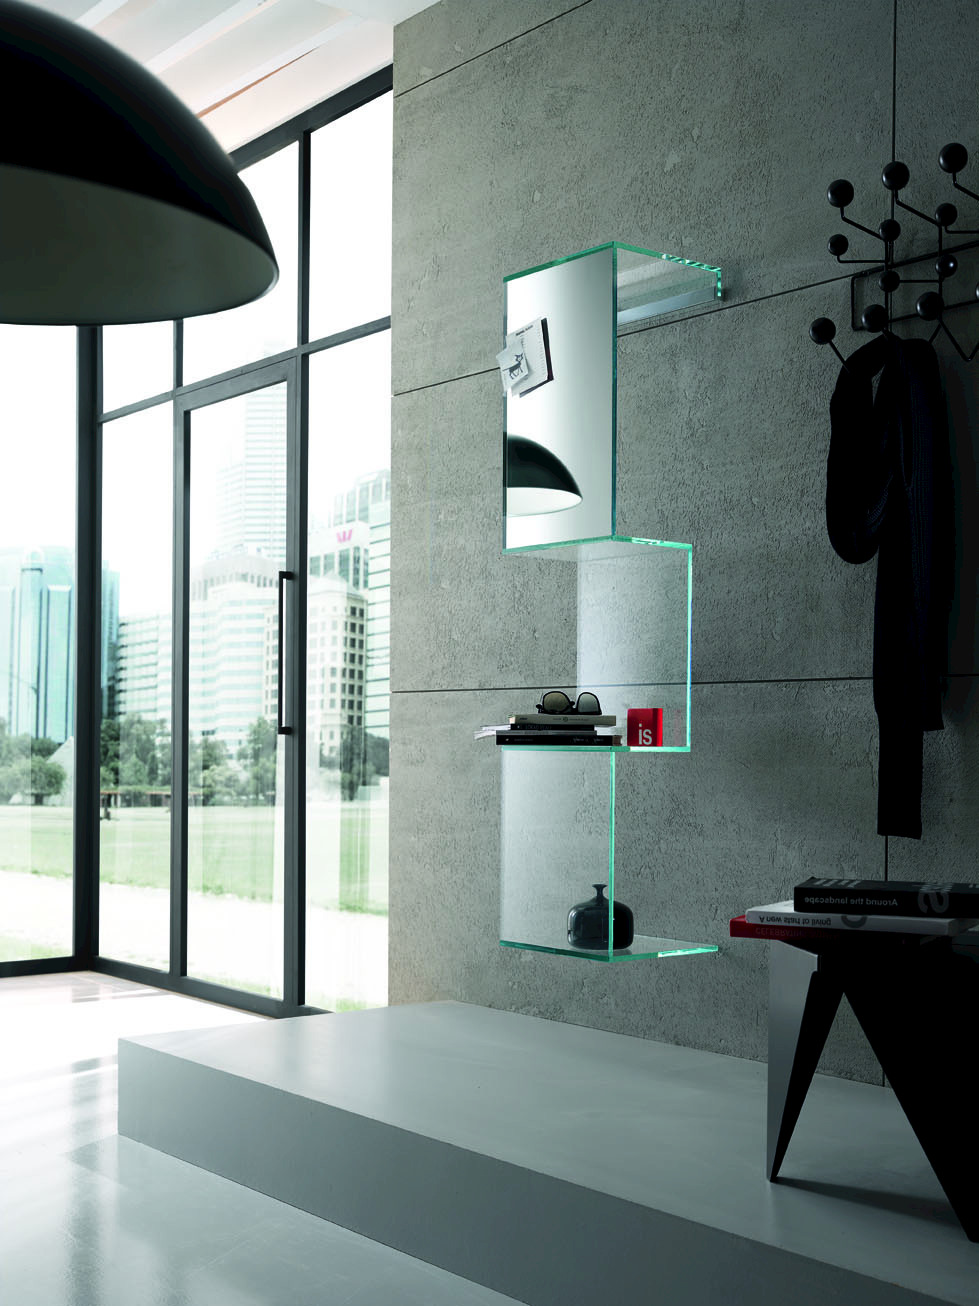 Wandregal design glas  Wandregal aus Glas CLING By Tonelli Design